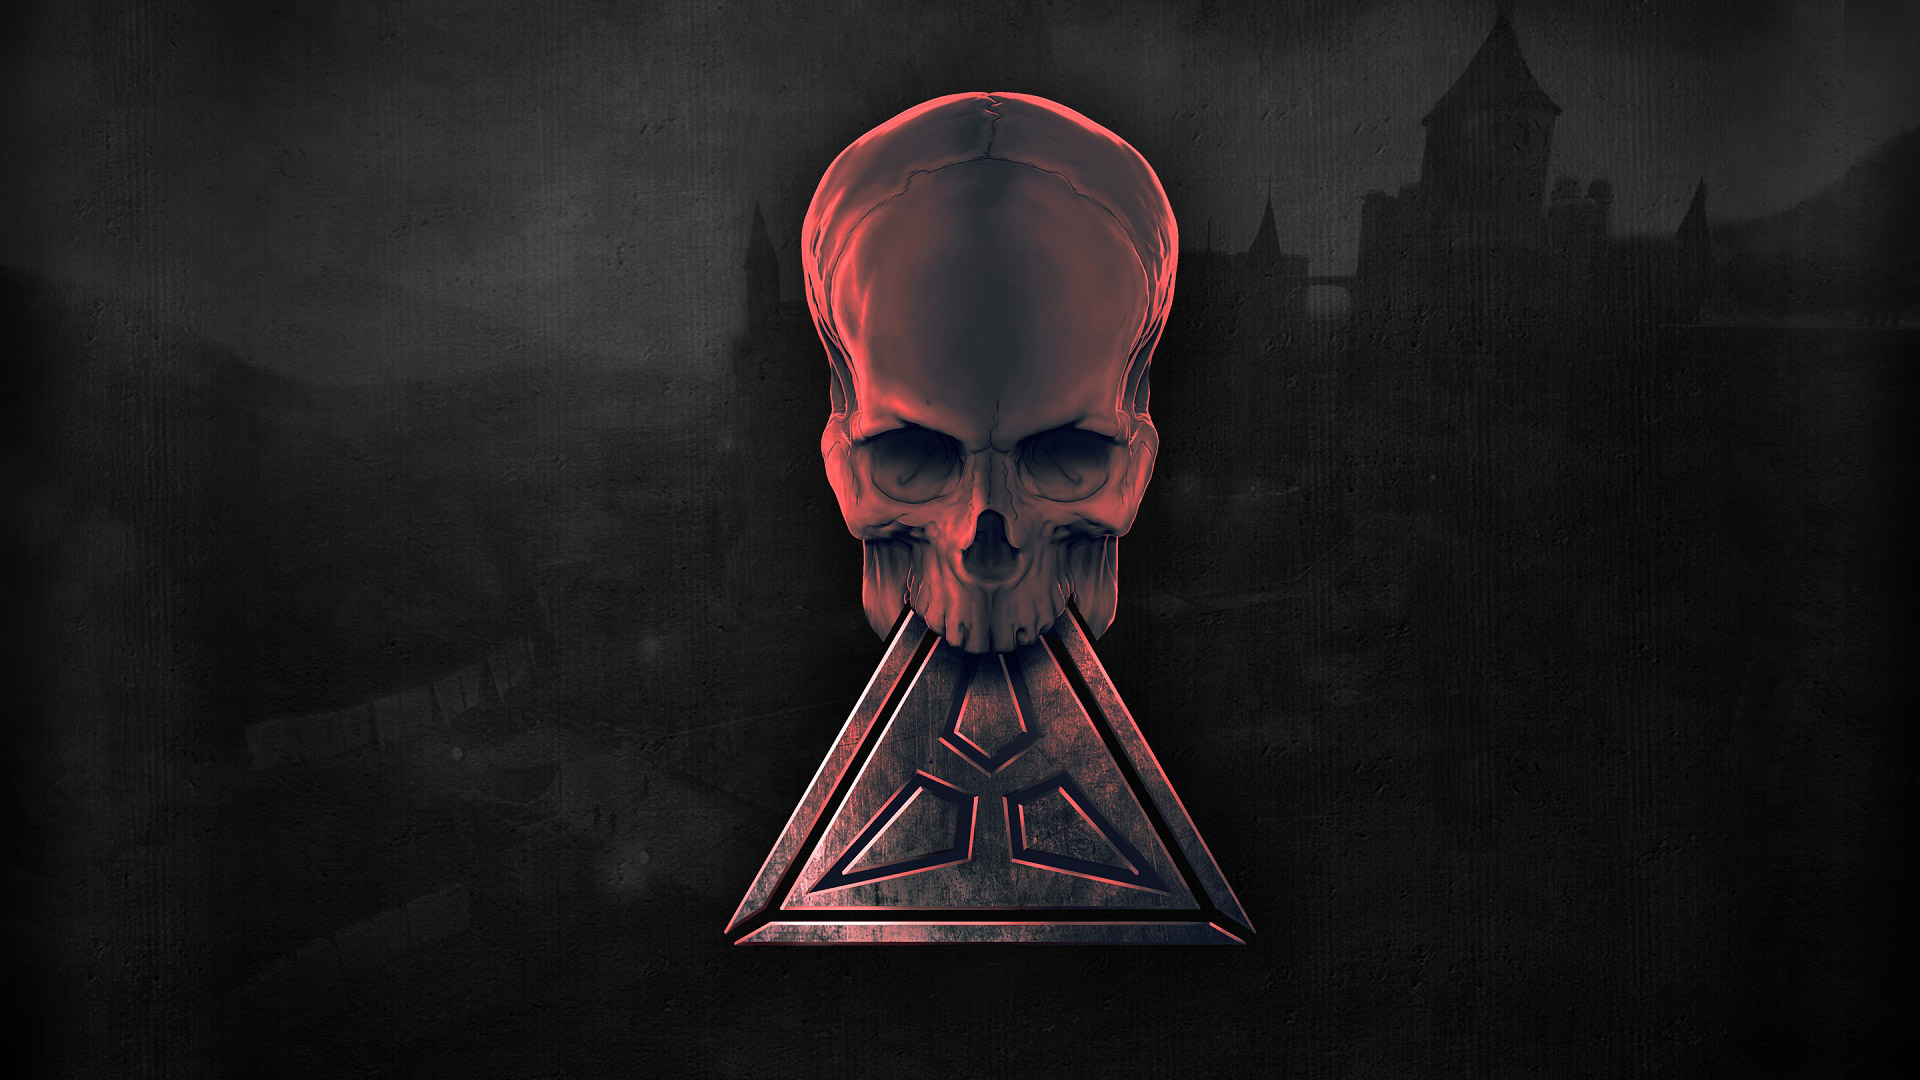 Free Rise of the Triad Wallpaper in 1920x1080